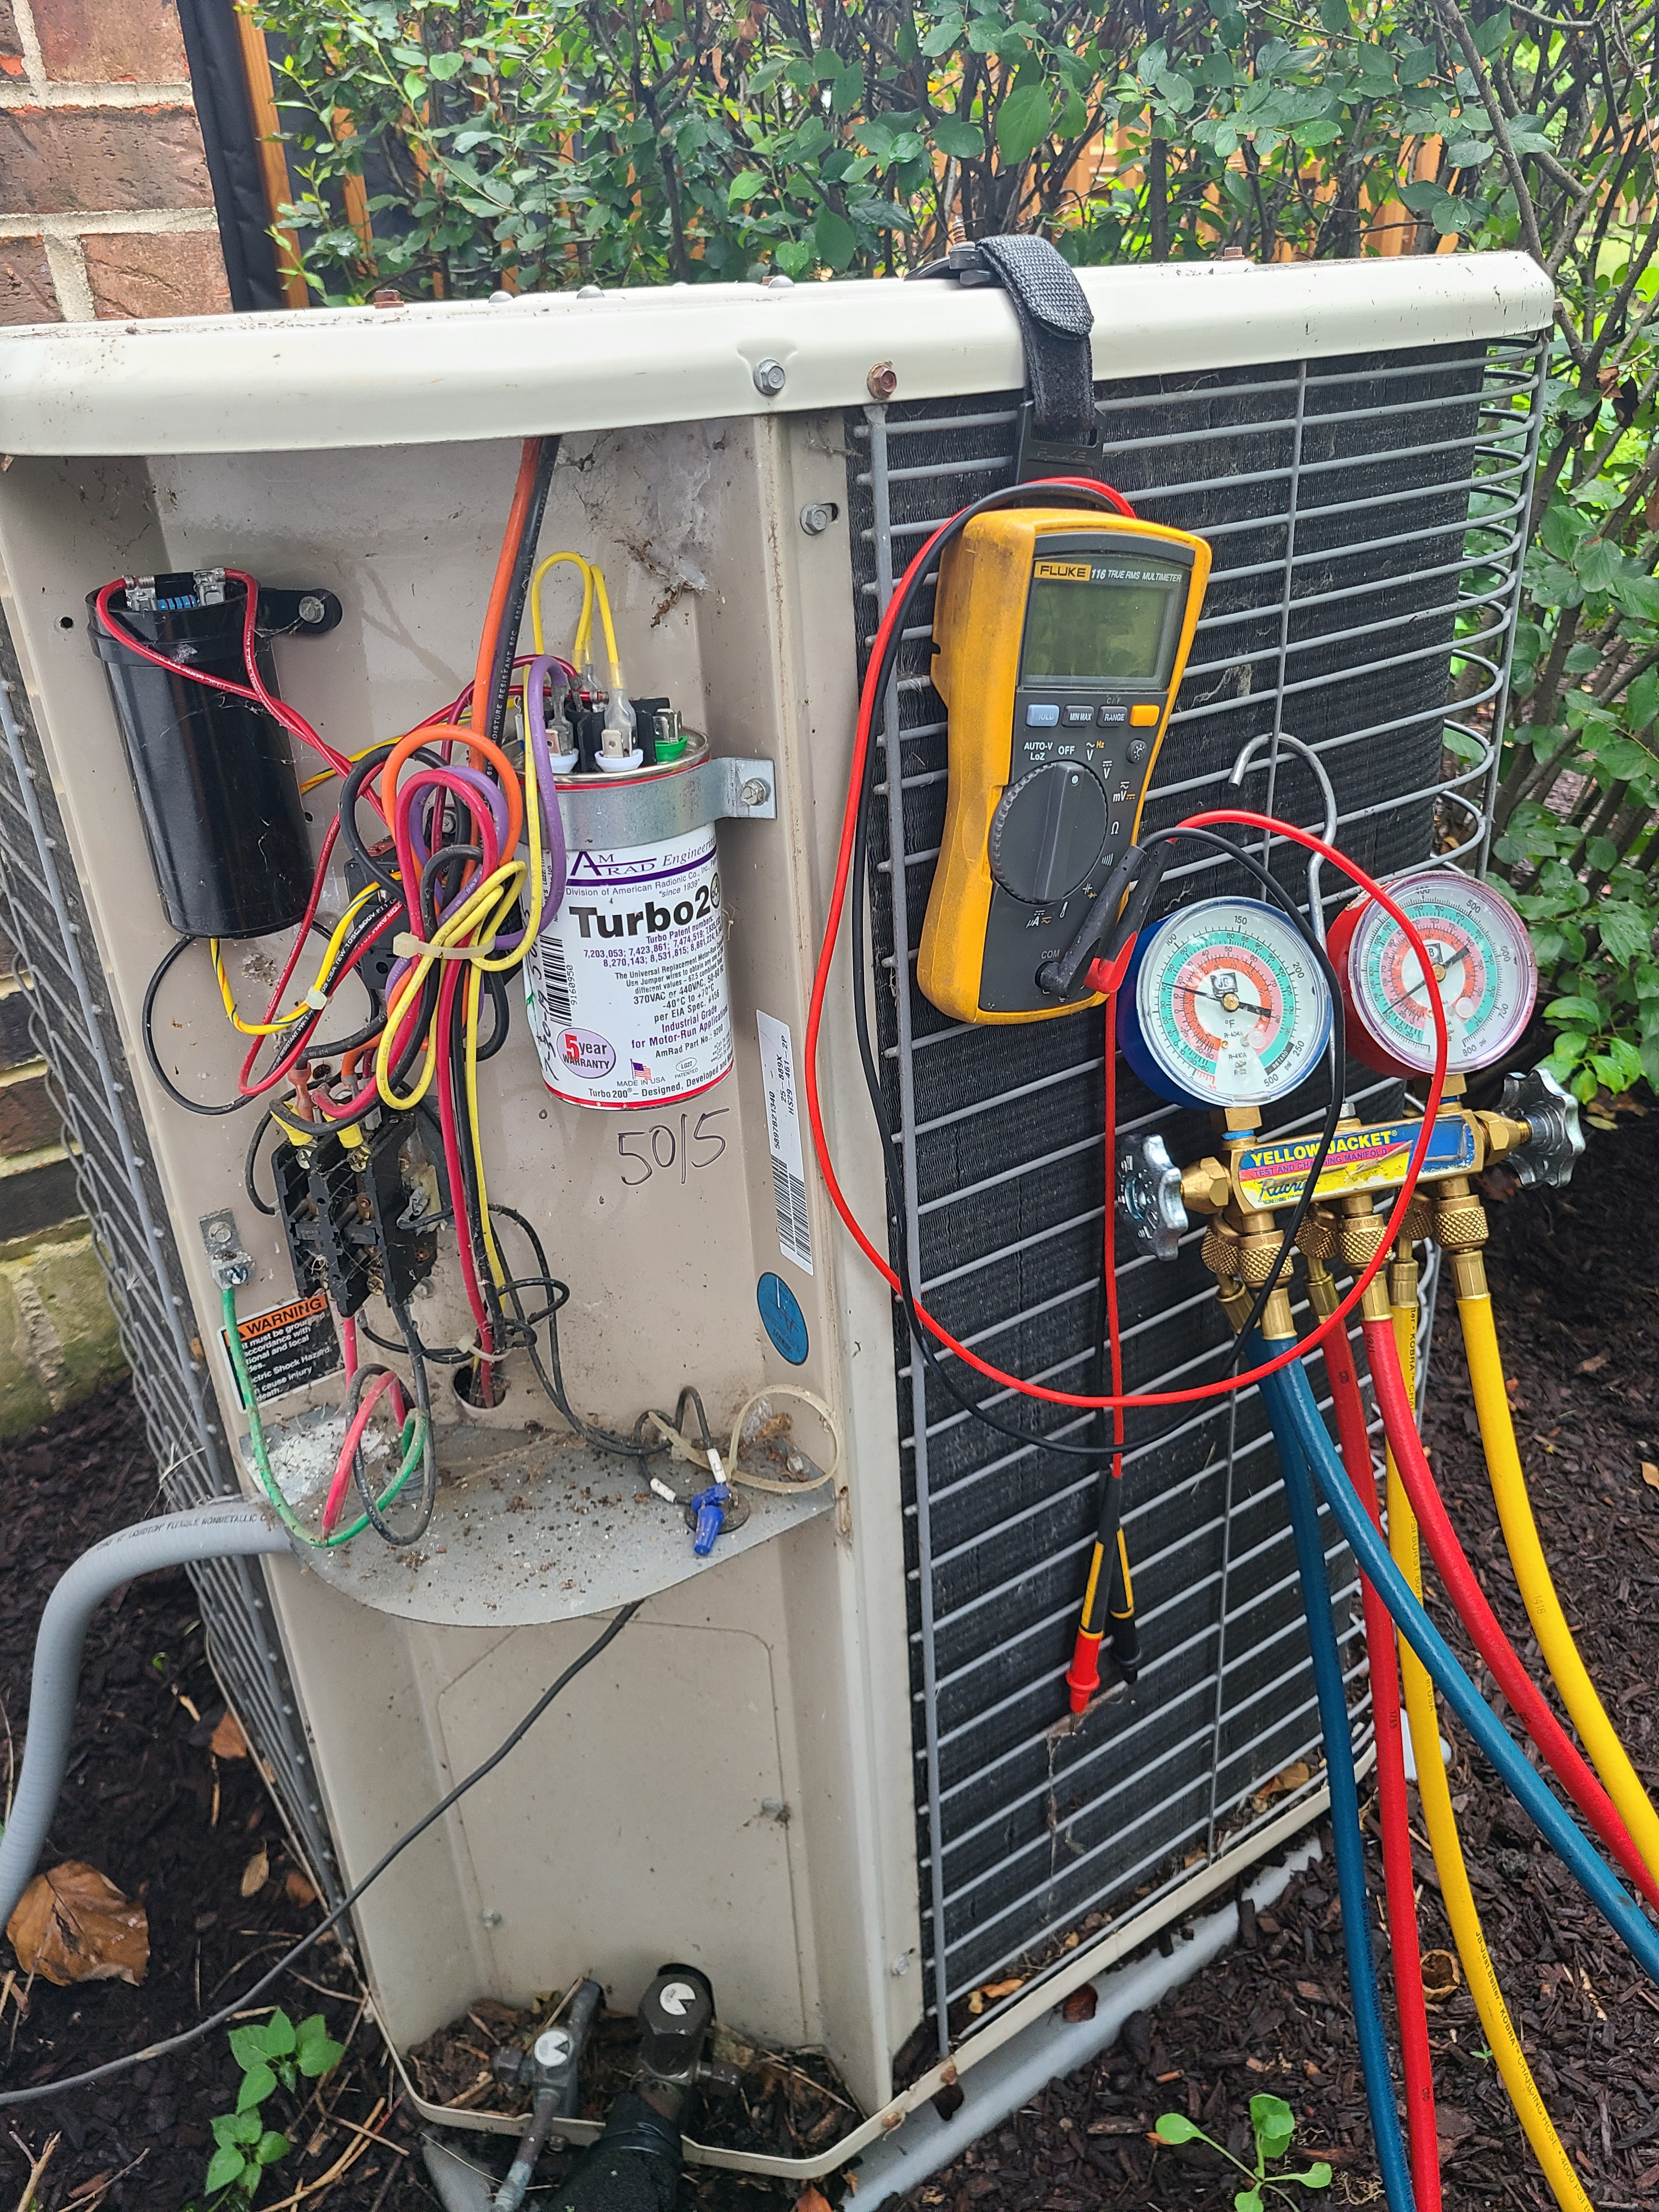 Lennox air conditioning system cleaned and checked. Ready for summer.